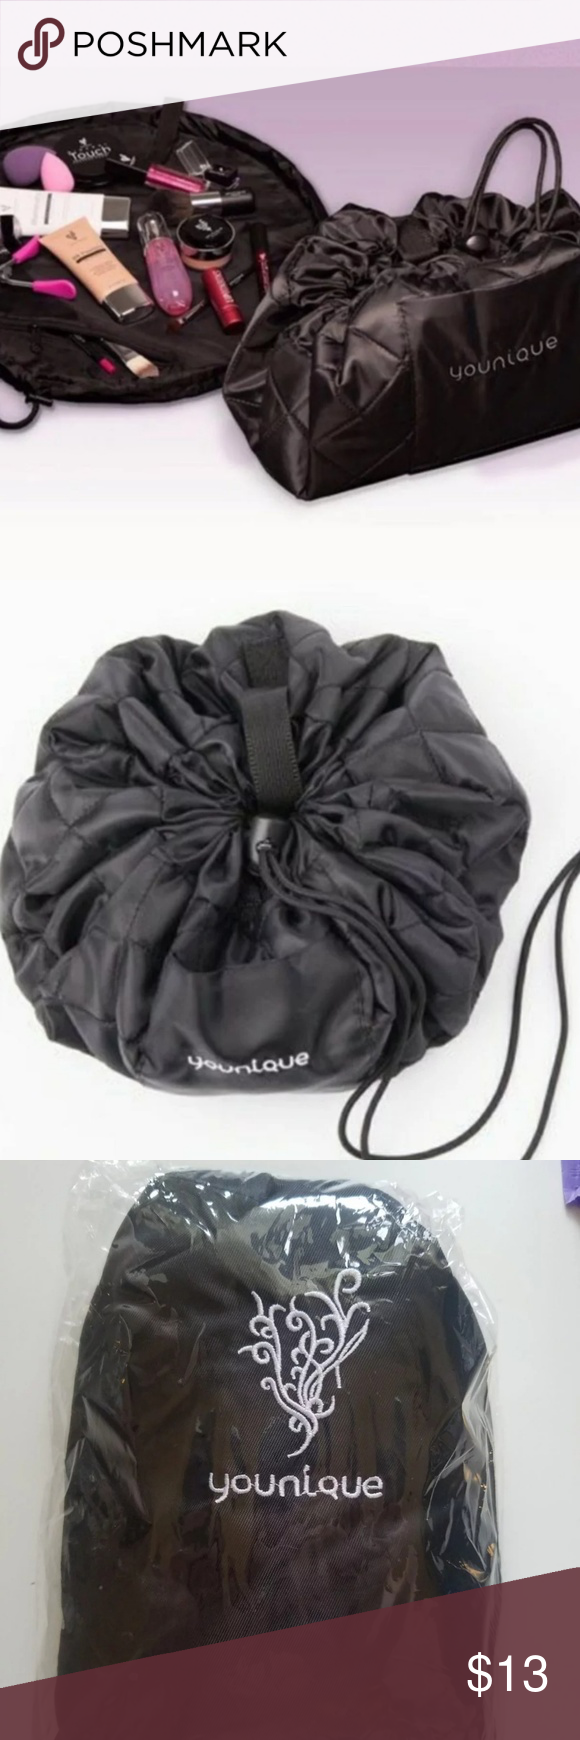 Younique Drawstring Makeup bag Makeup bag, Bags, Drawstring